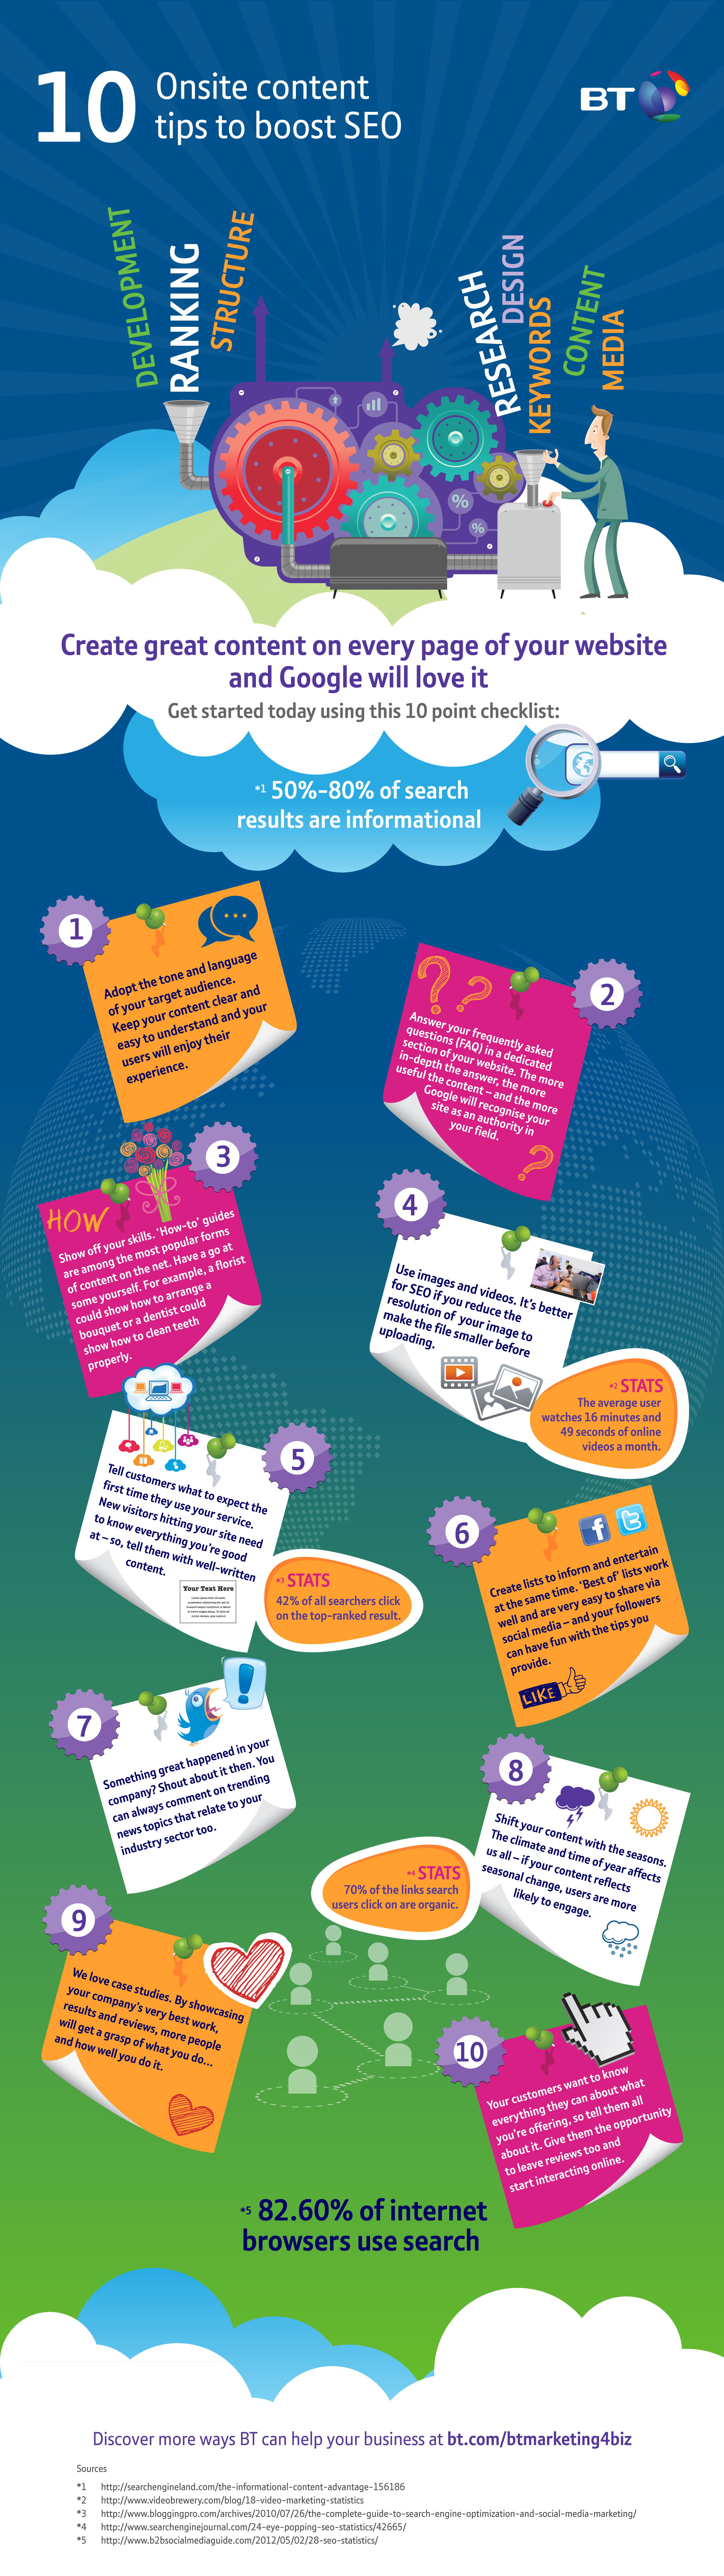 10 Tips To Boost Your Site Content With SEO : infographic